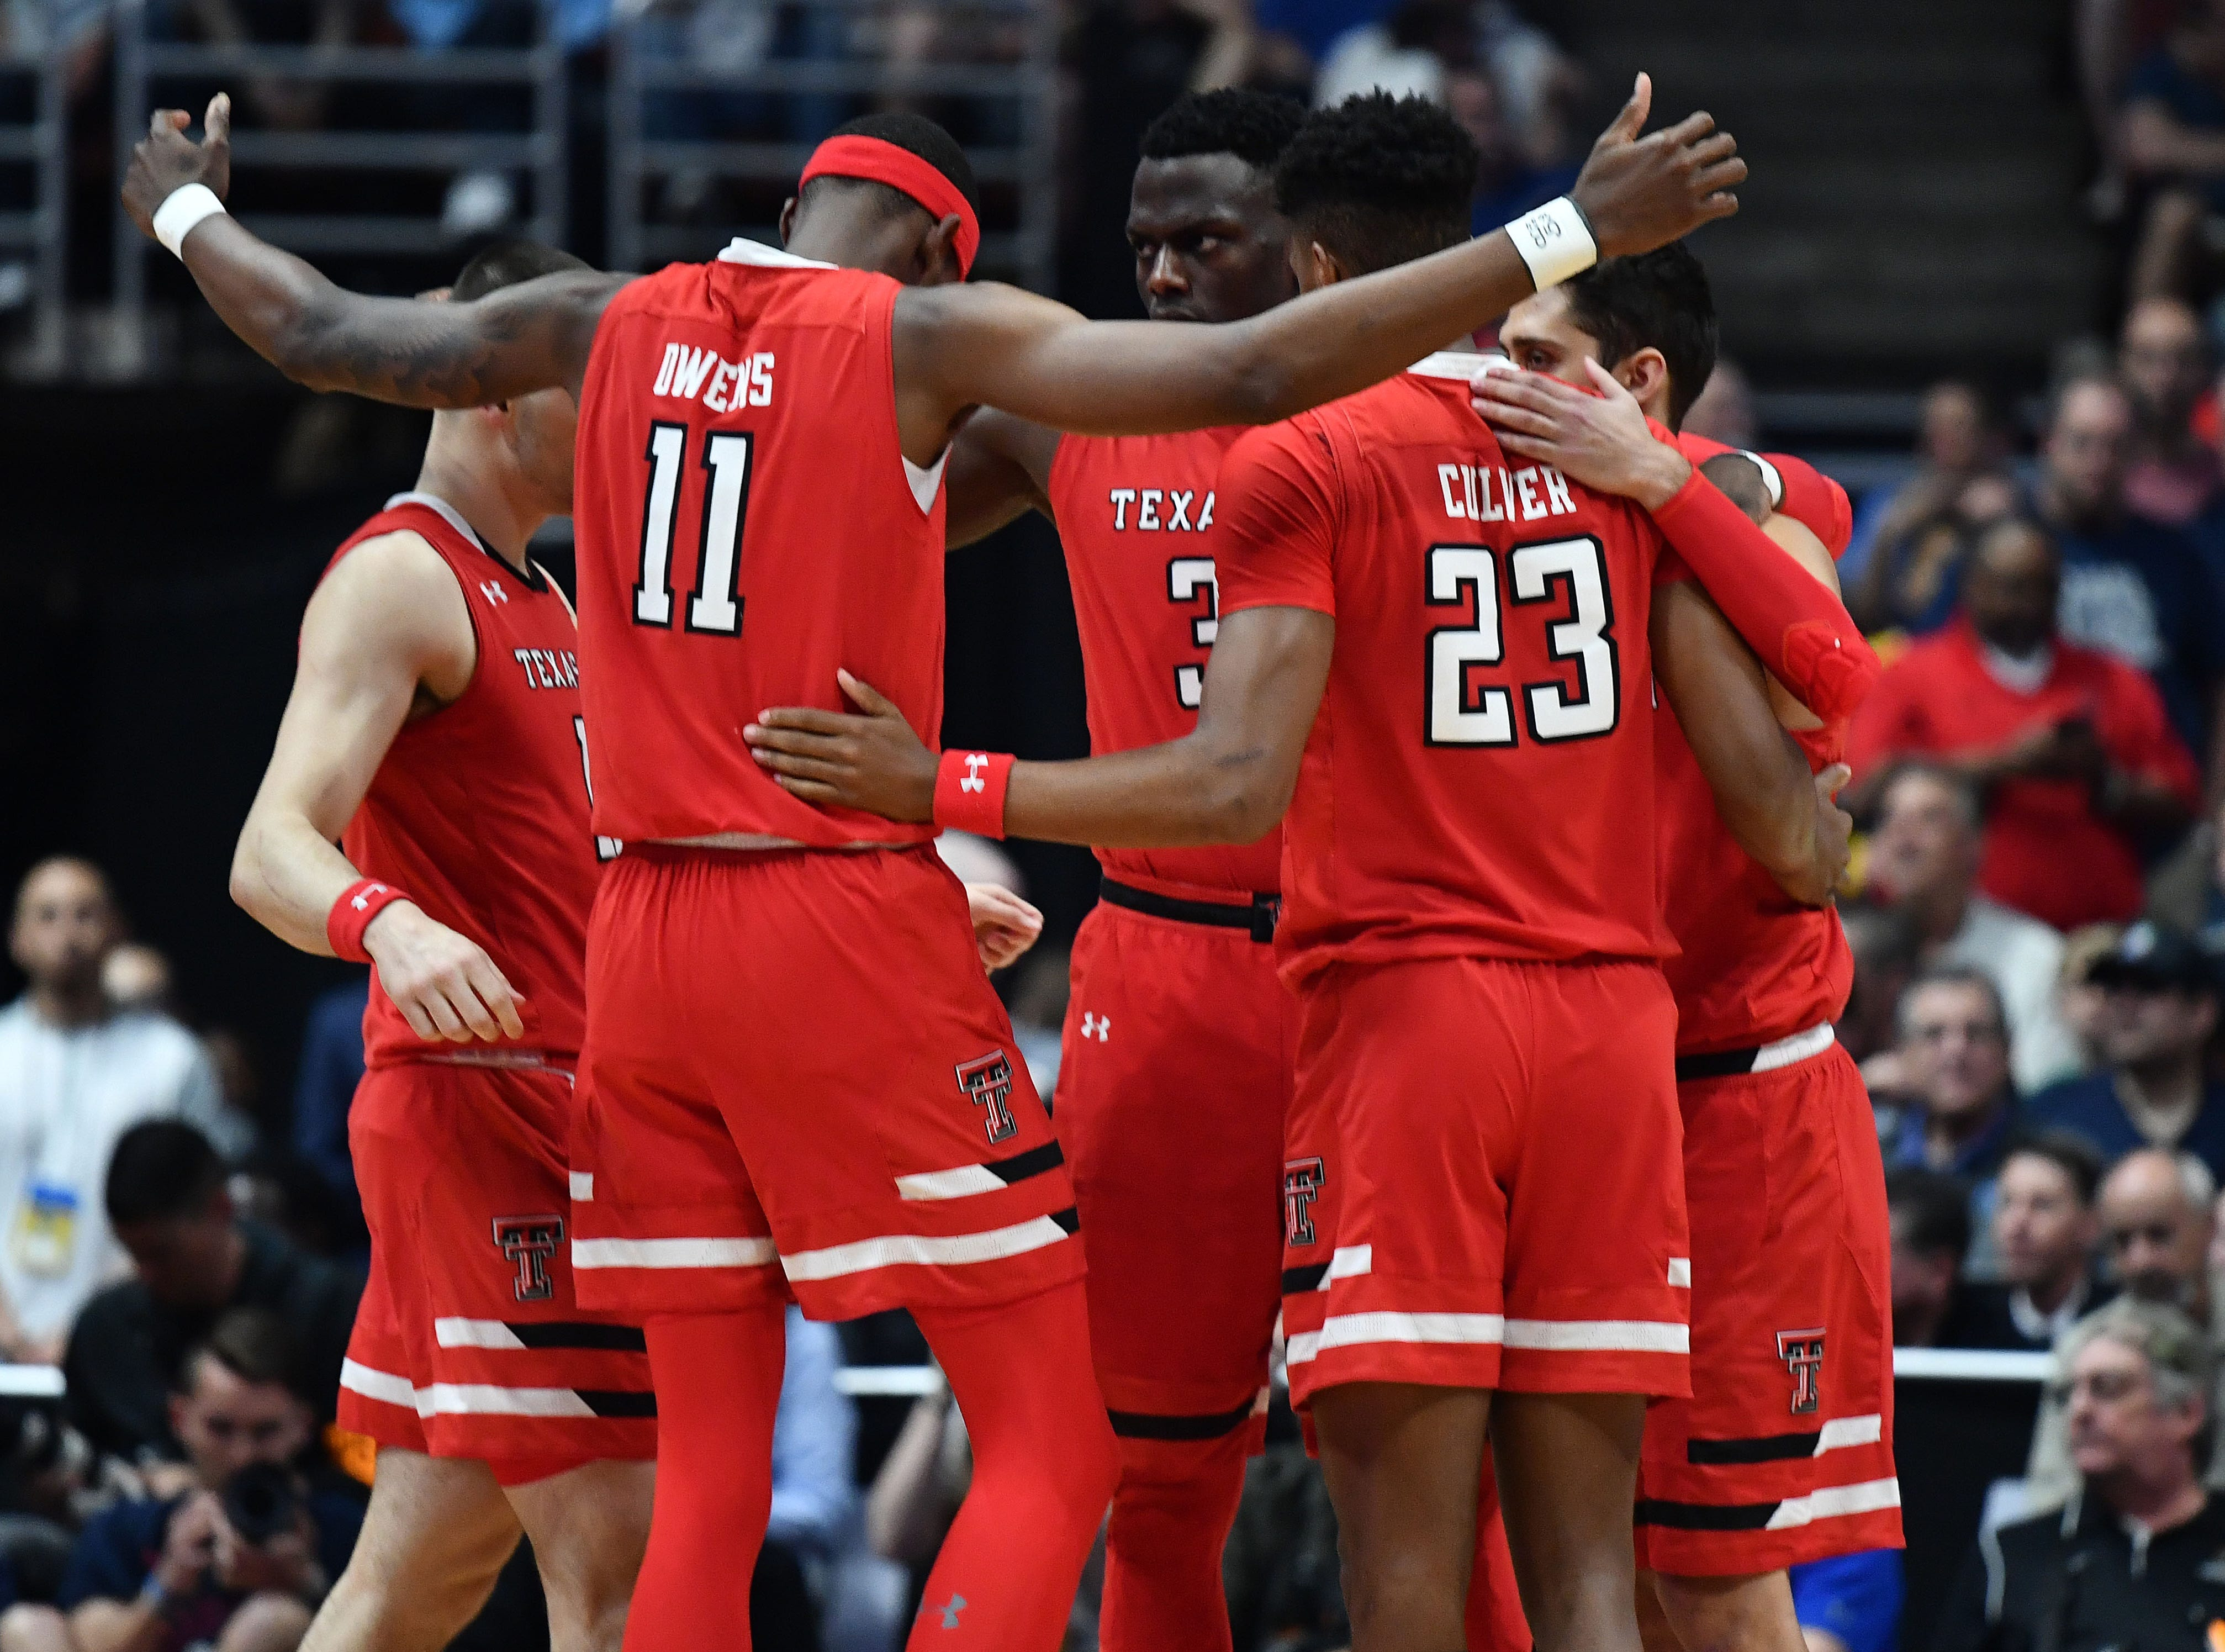 March 30, 2019; Anaheim, CA, USA; Texas Tech Red Raiders forward Tariq Owens (11) and players gather before playing against Gonzaga Bulldogs in the championship game of the west regional of the 2019 NCAA Tournament at Honda Center. Mandatory Credit: Robert Hanashiro-USA TODAY Sports